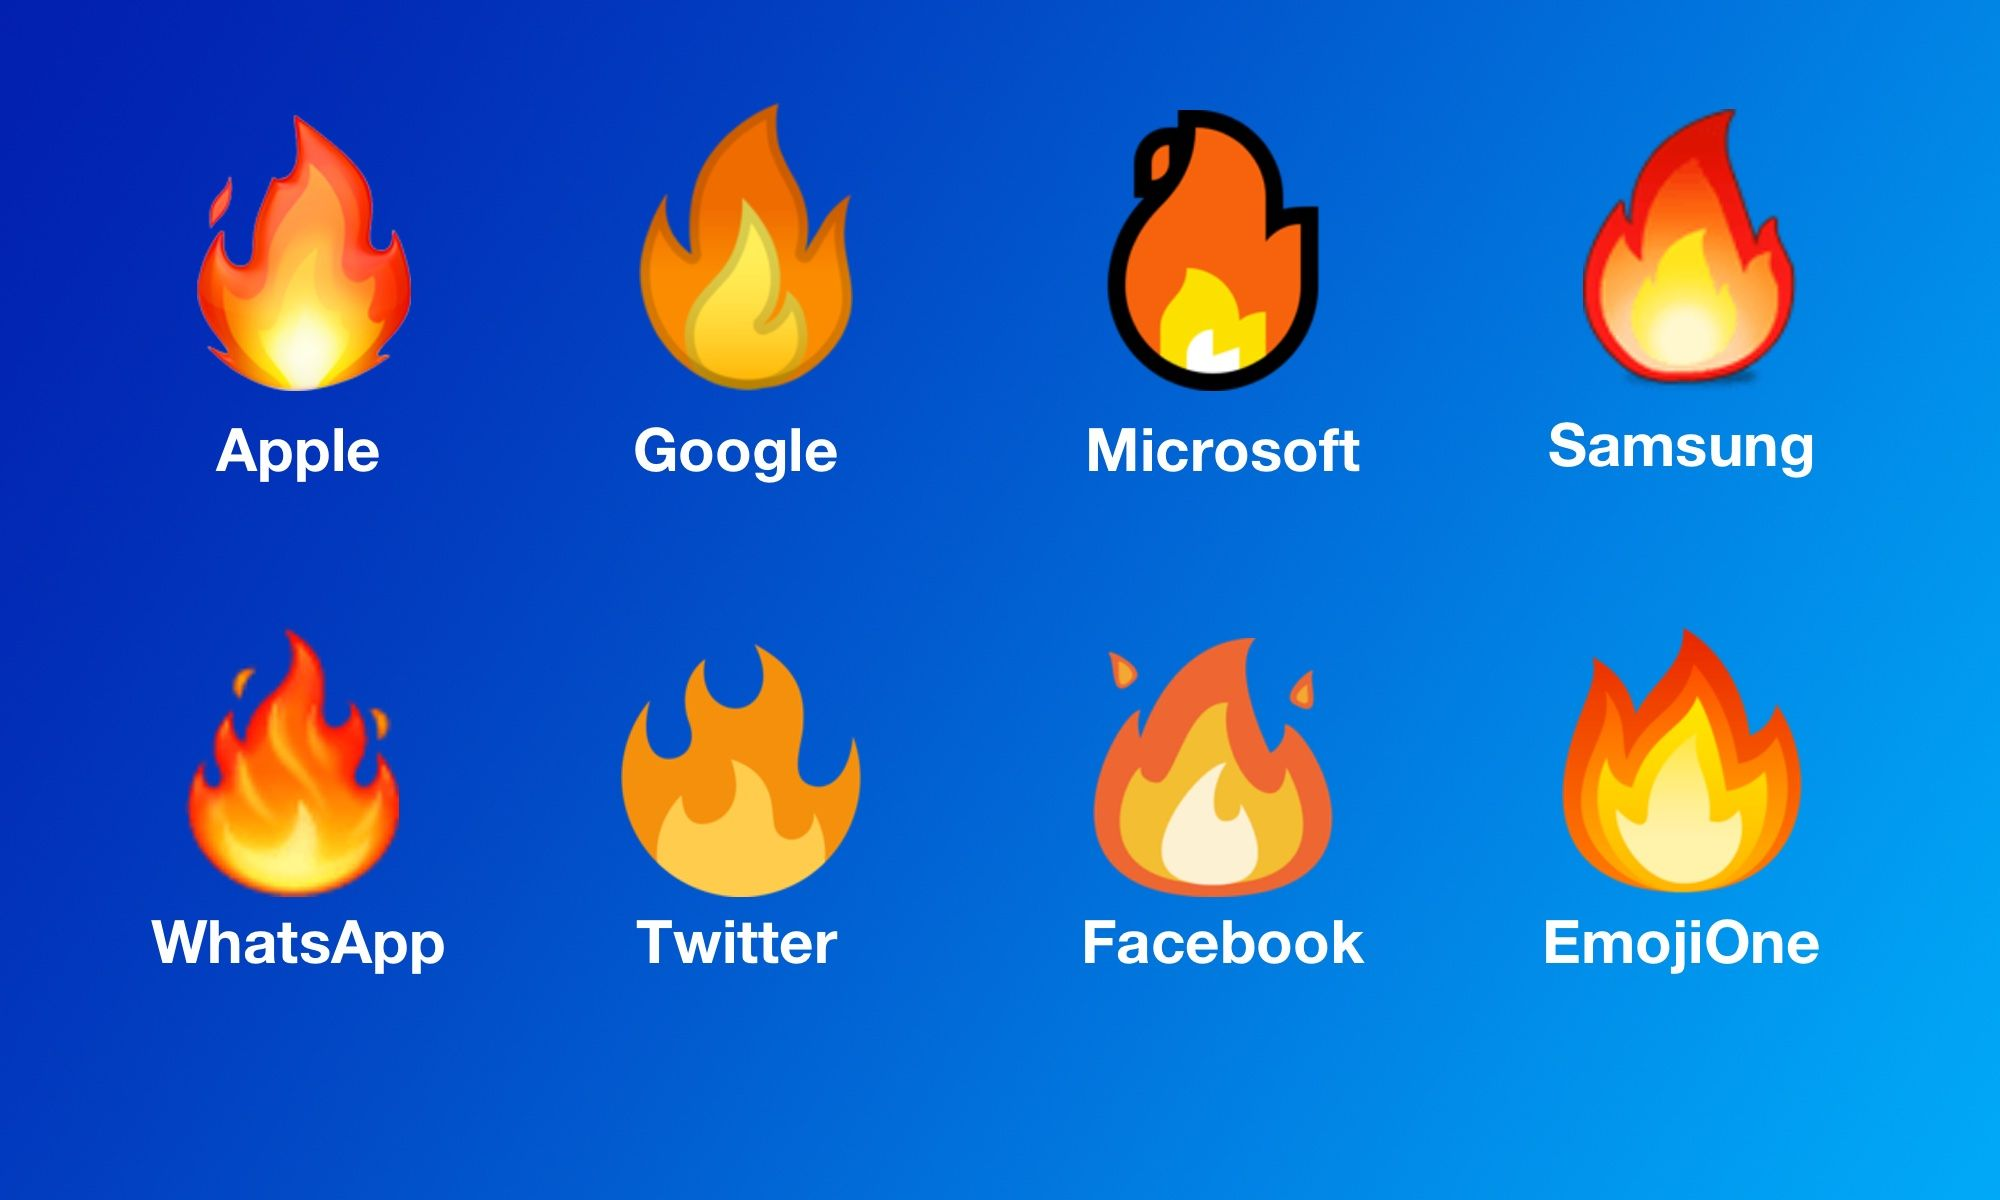 Emojiology: 🔥 Fire